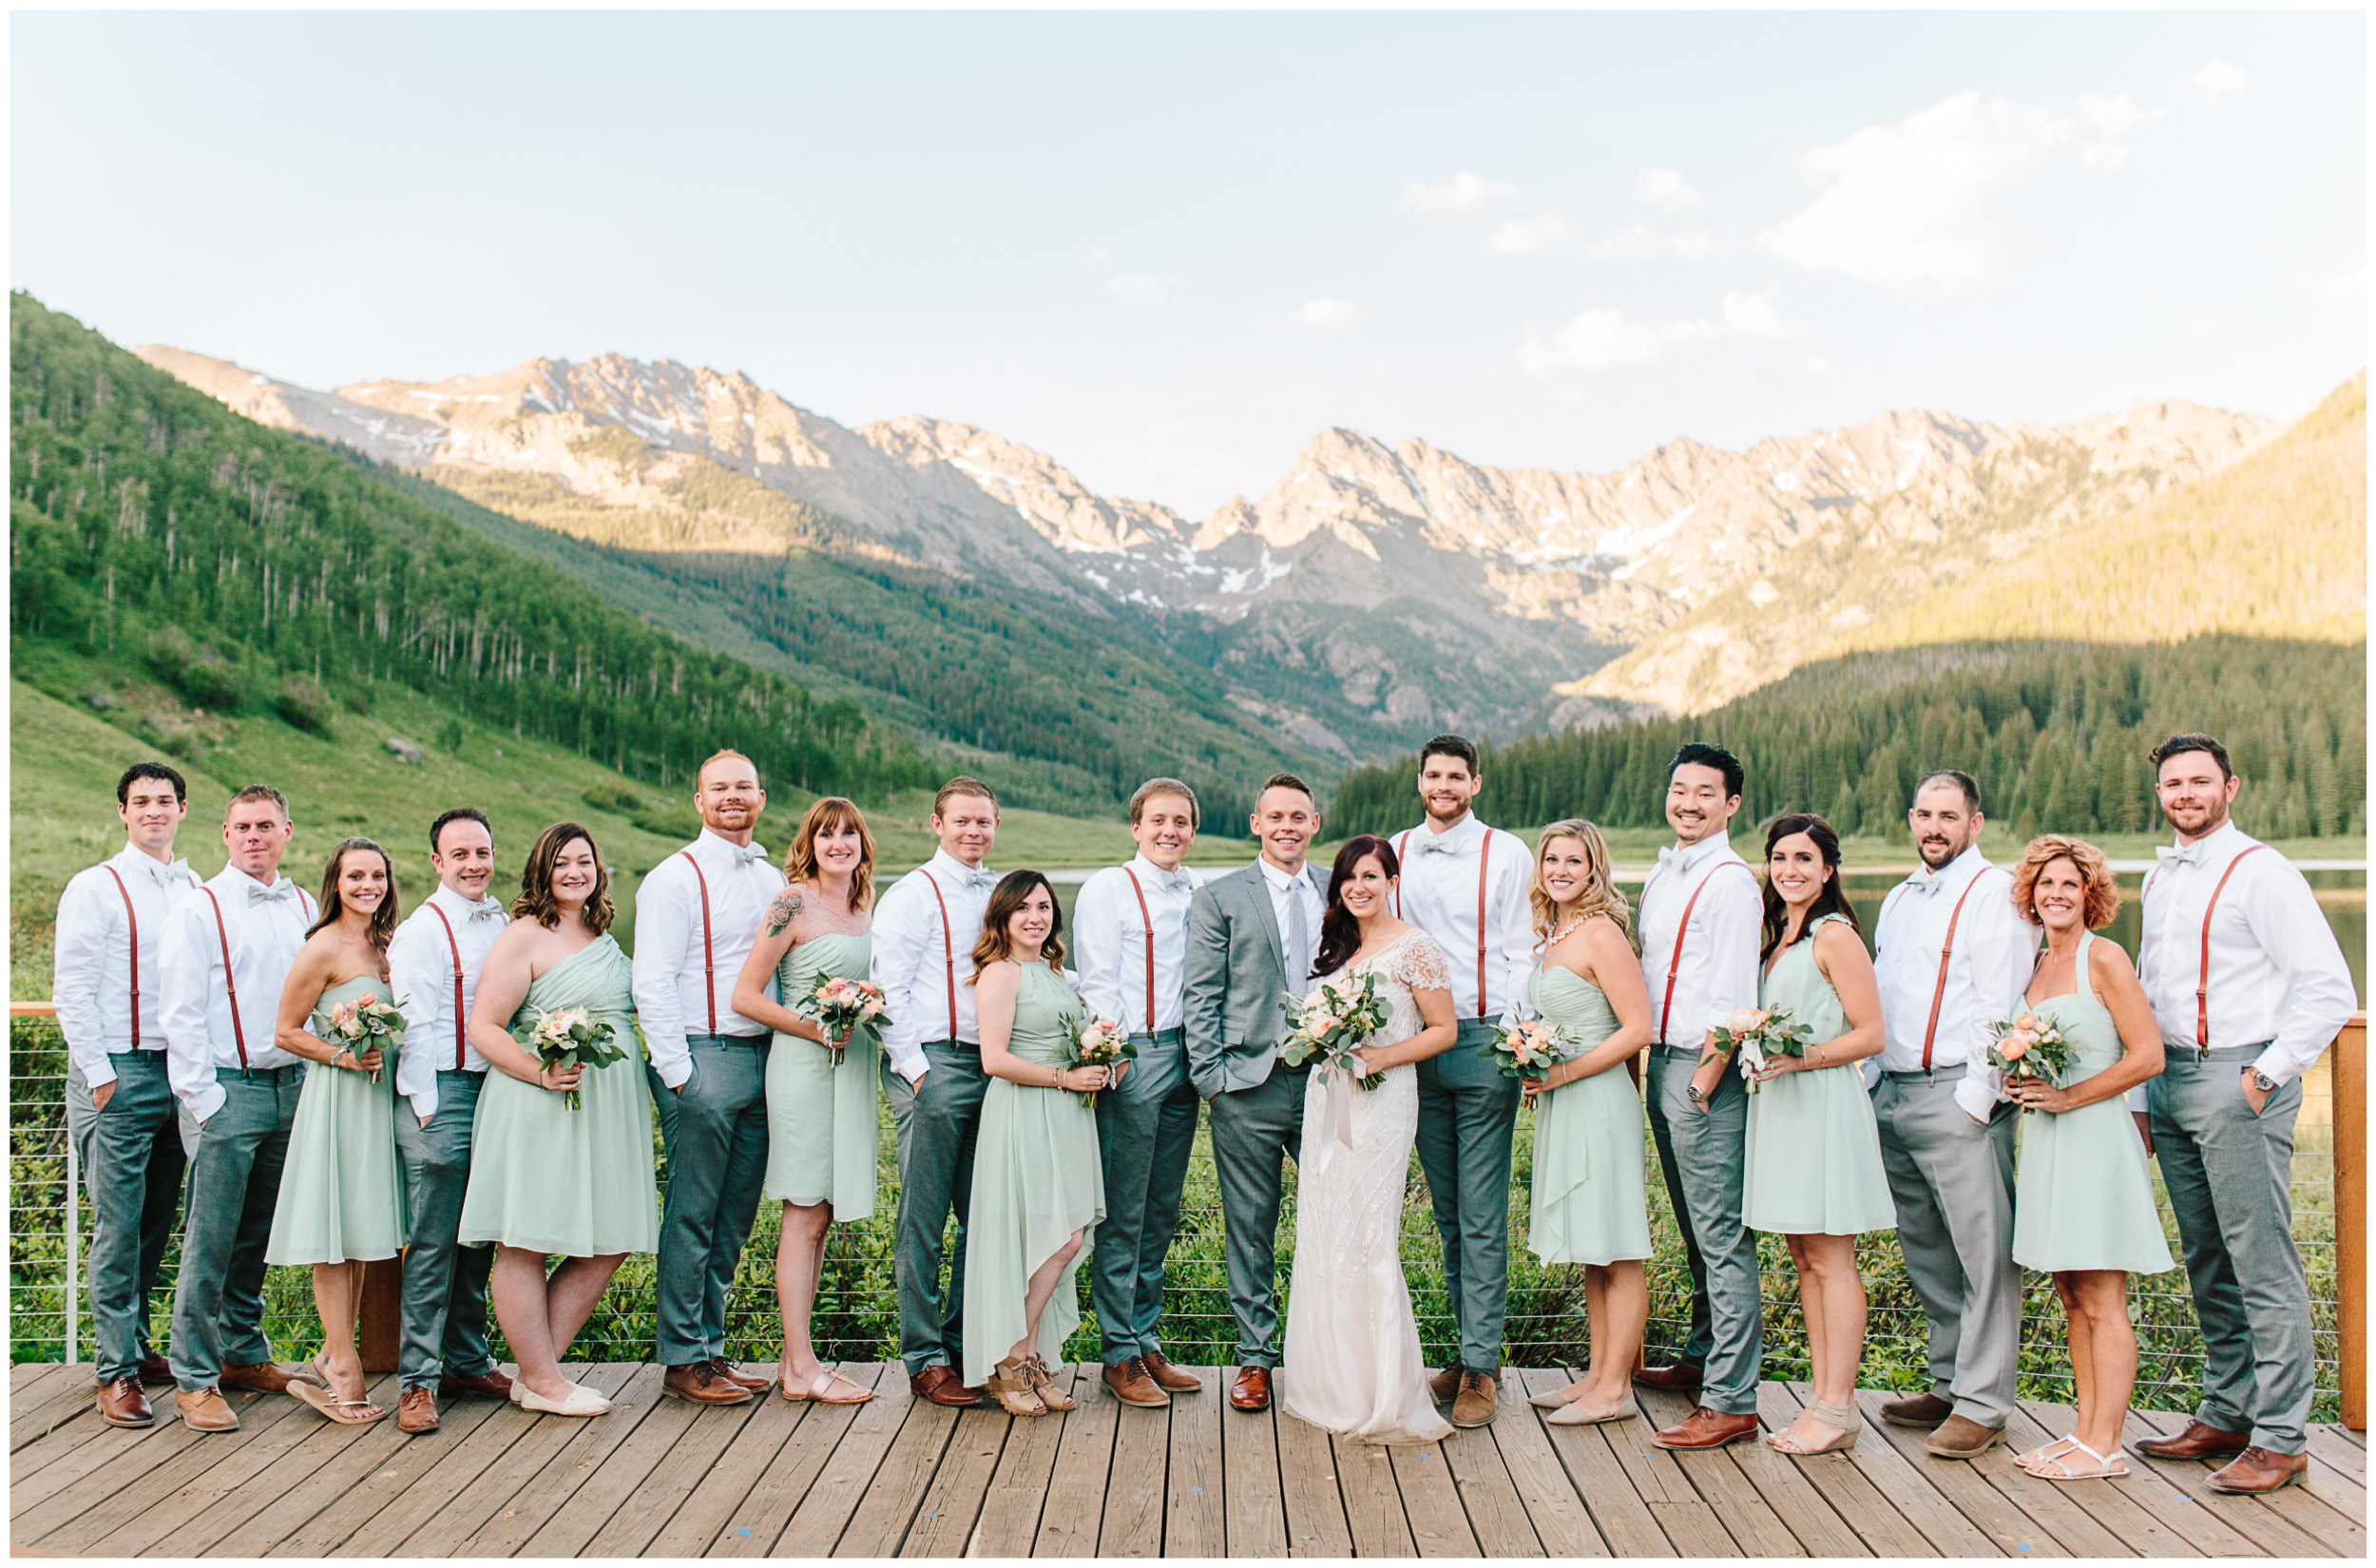 rocky_mountain_wedding_53.jpg